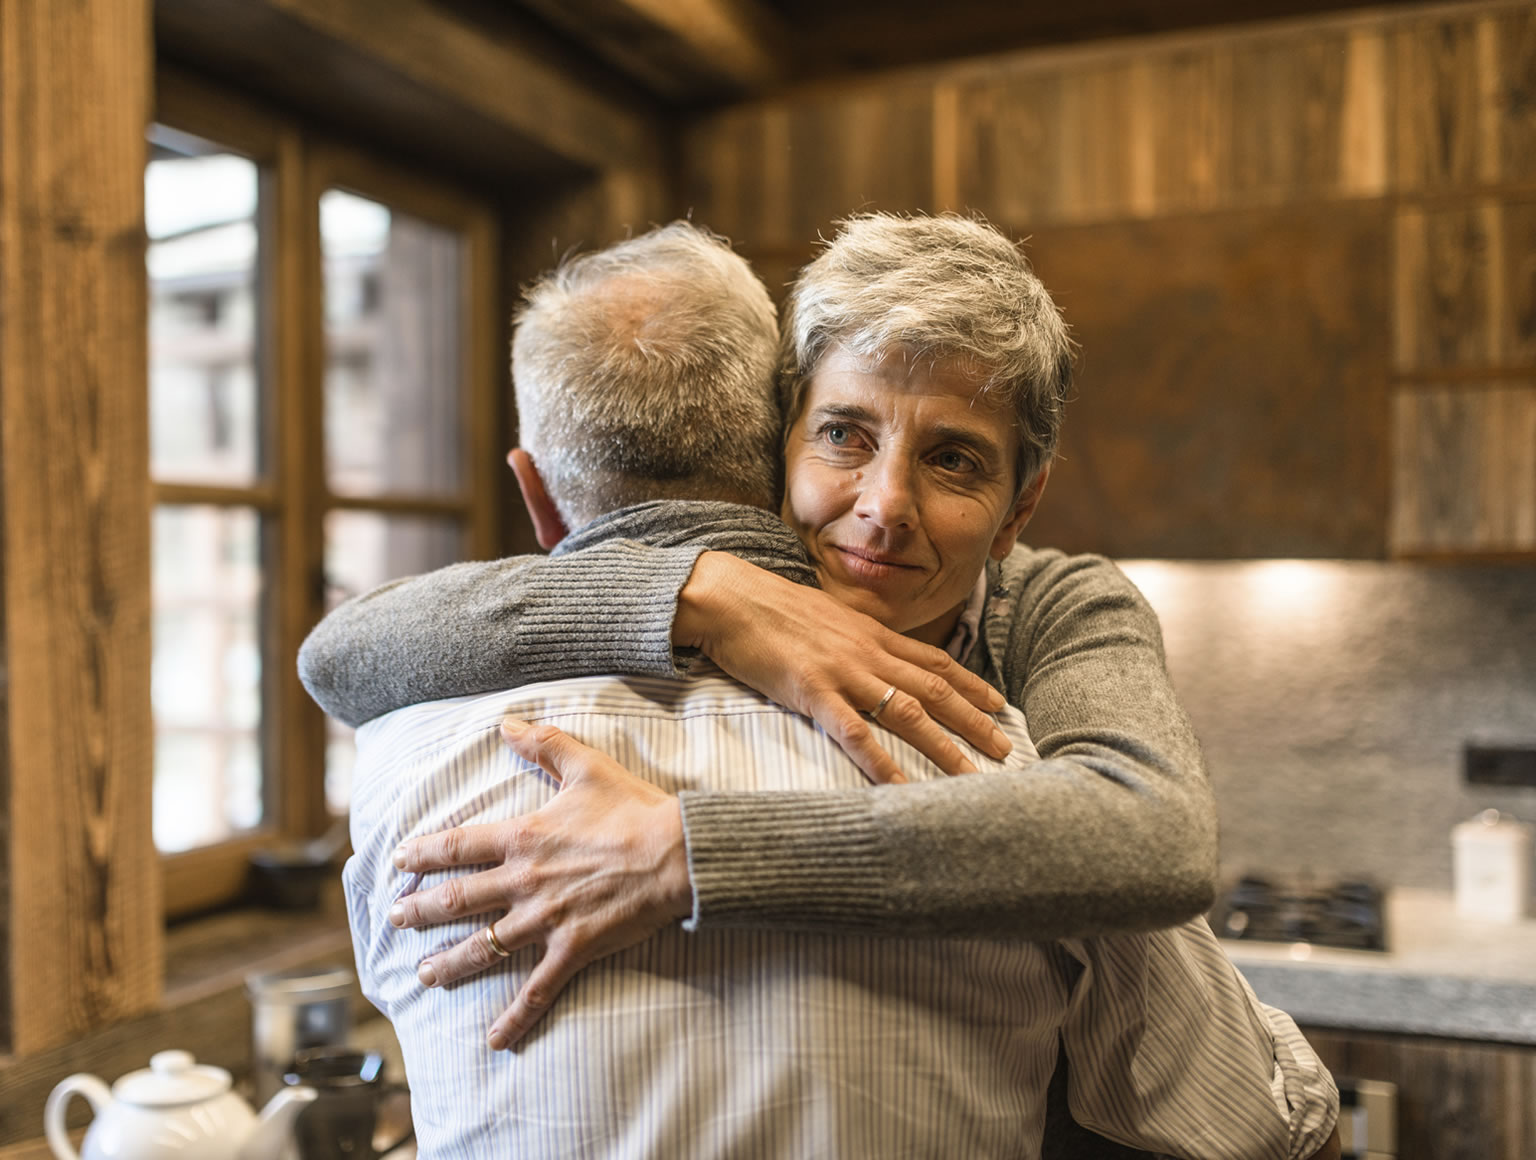 Older couple embracing in family kitchen